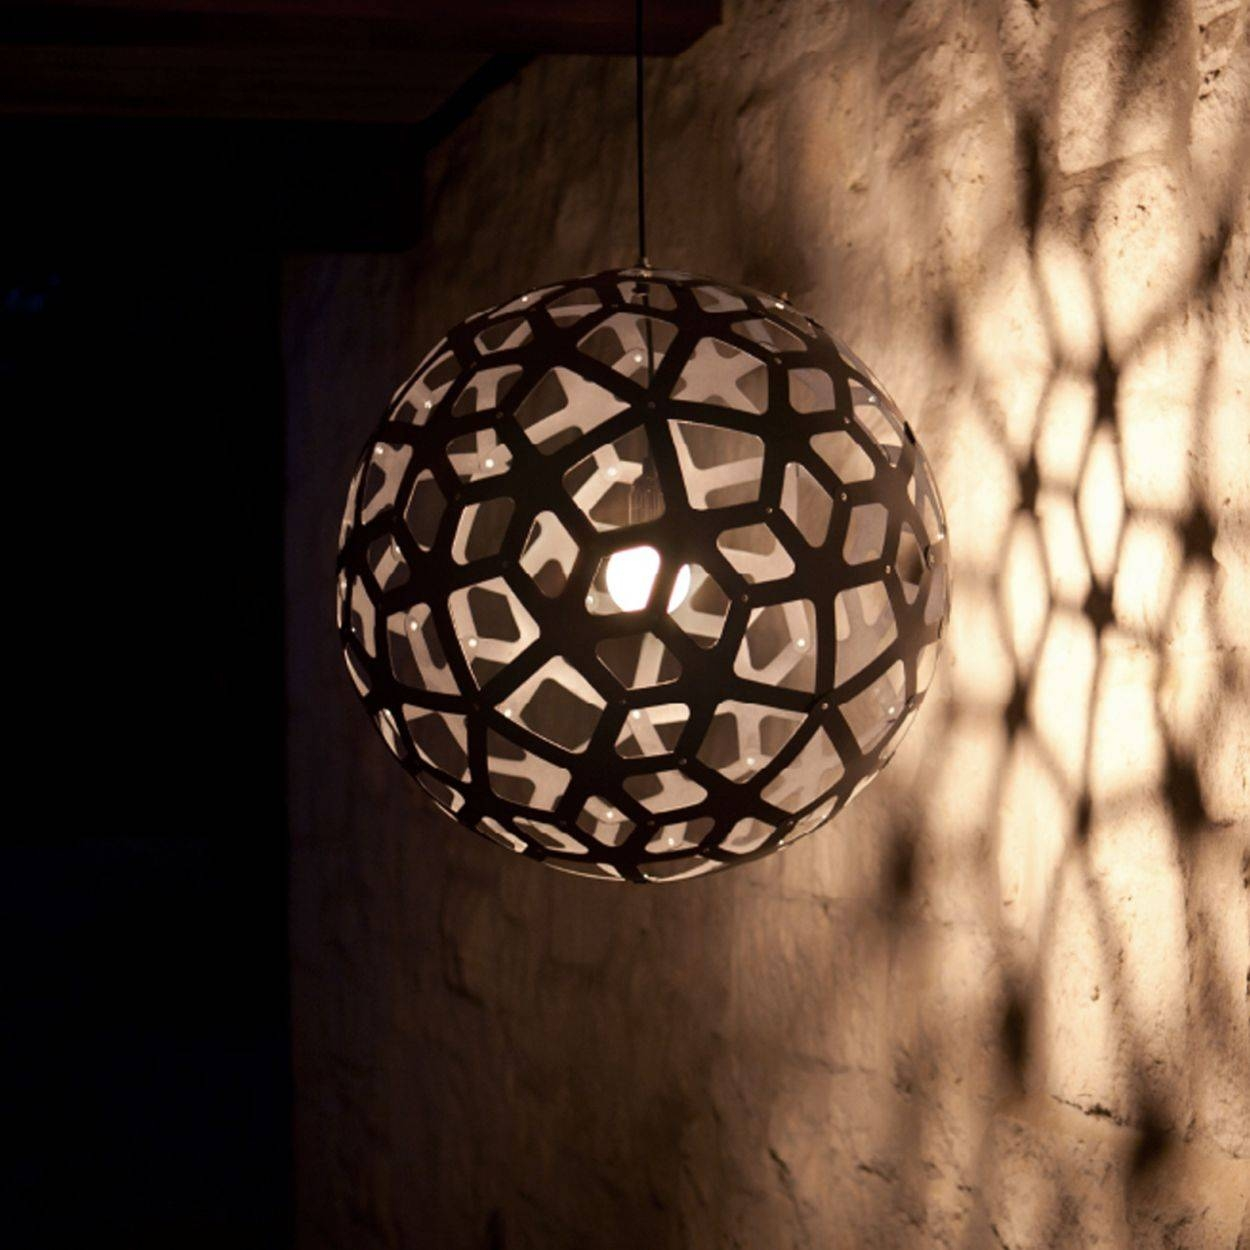 Coral, Contemporary Wooden Light For Dining Room, Living Room Throughout Coral Pendant Lights (View 6 of 15)